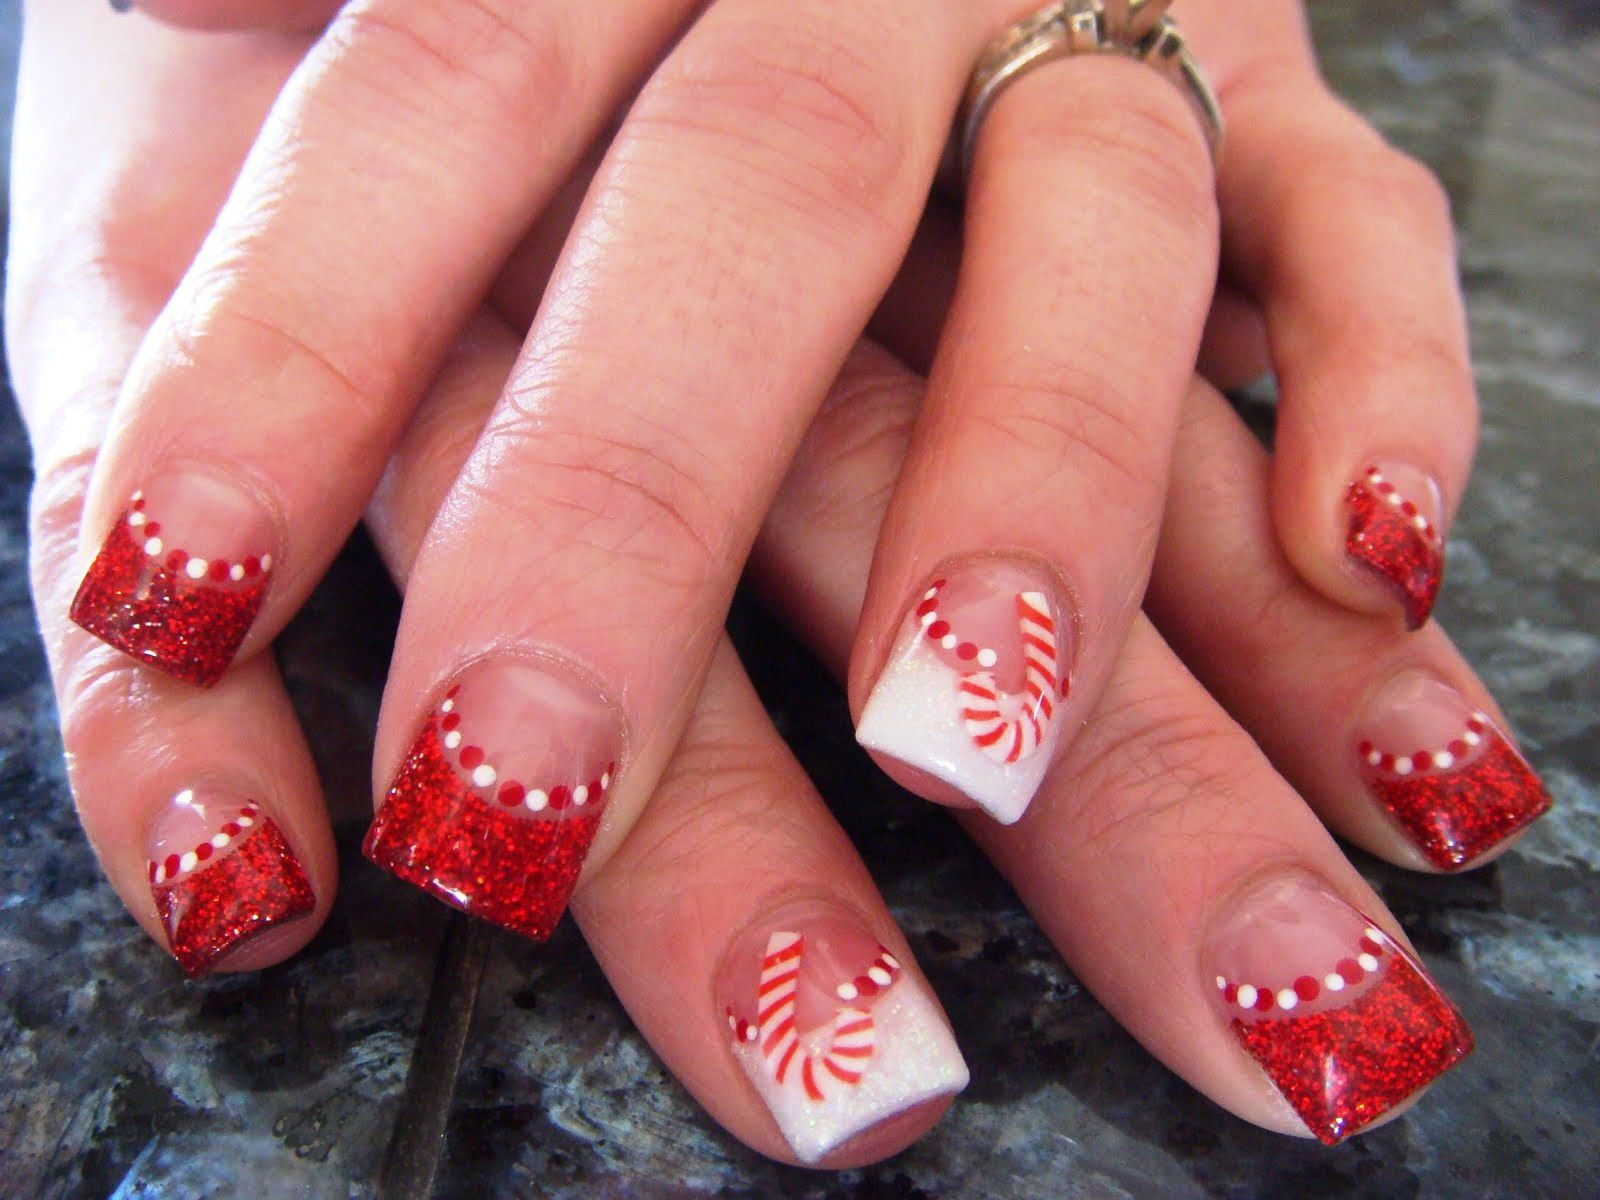 acrylic nail tips candy cane. Black Bedroom Furniture Sets. Home Design Ideas